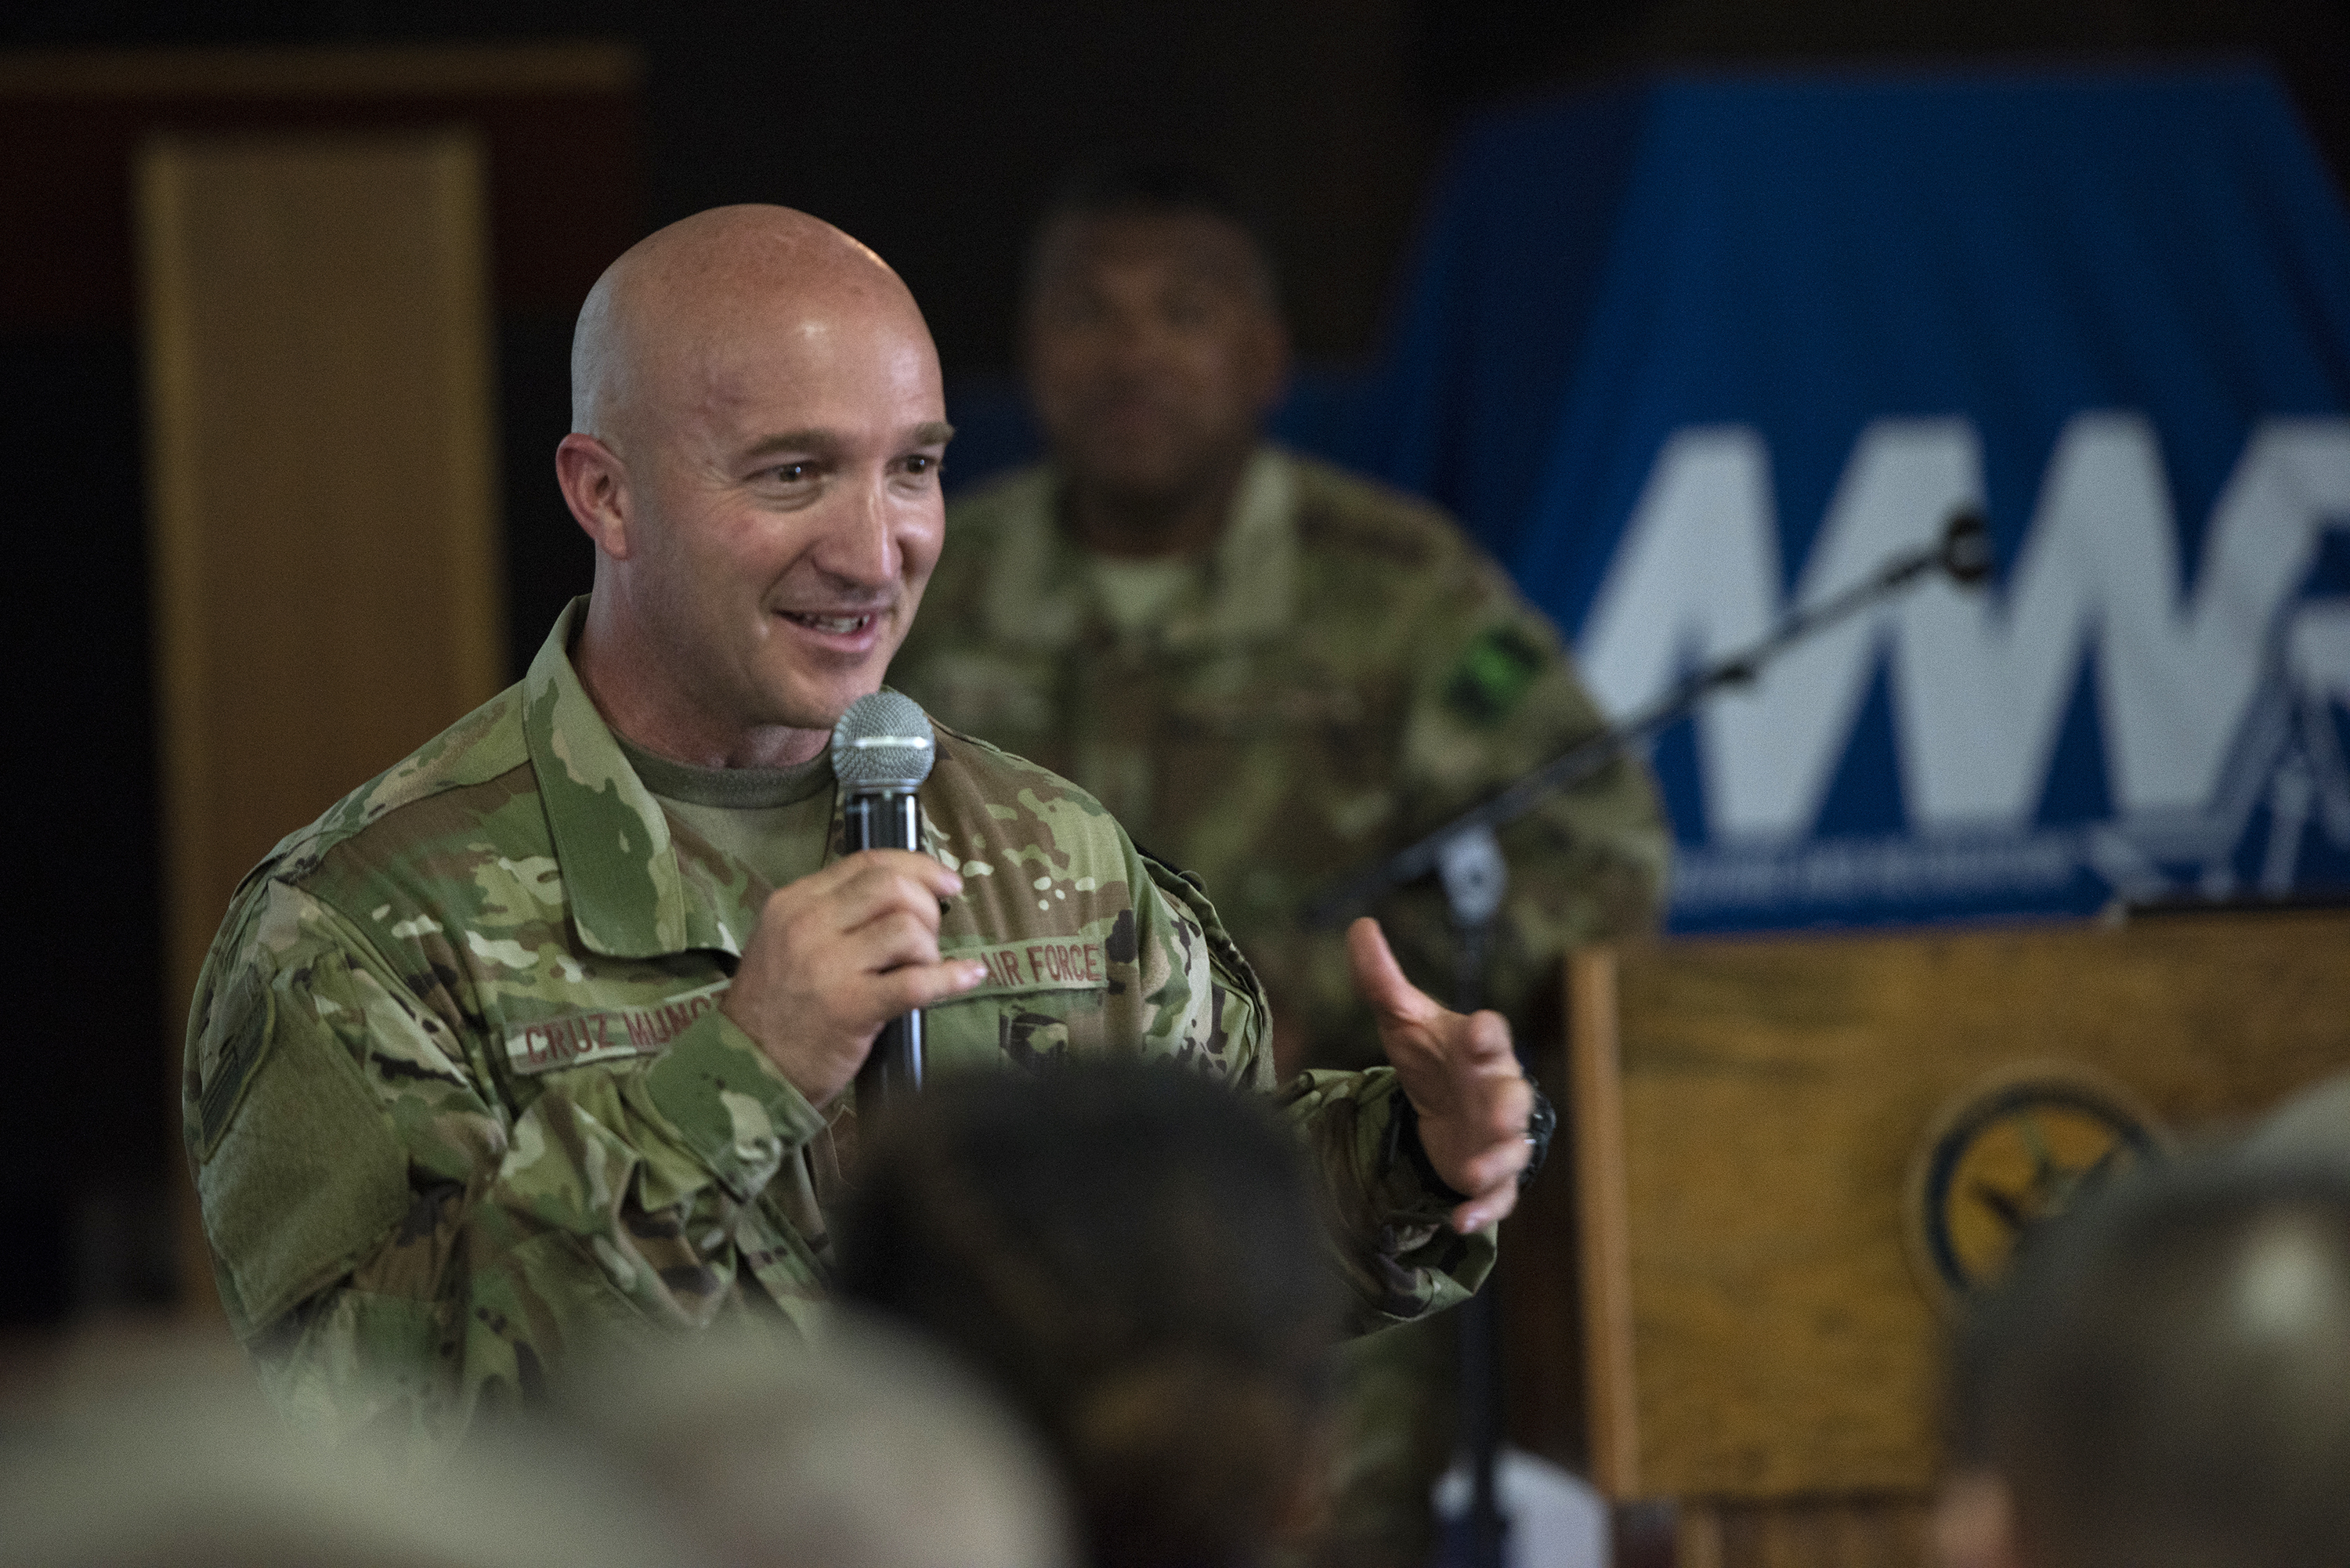 U.S. Air Force Chief Master Sgt. Anthony Cruz Munoz, command chief, 3rd Air Force, speaks to Airmen from the 449th Air Expeditionary Group on Camp Lemonnier, Djibouti, Aug. 18, 2018. Cruz Munoz and Lt. Gen. Richard Clark, commander, 3rd Air Force, participated in a question-and-answer session and shared their leadership perspectives with the deployed service members. (U.S. Air National Guard photo by Master Sgt. Sarah Mattison)